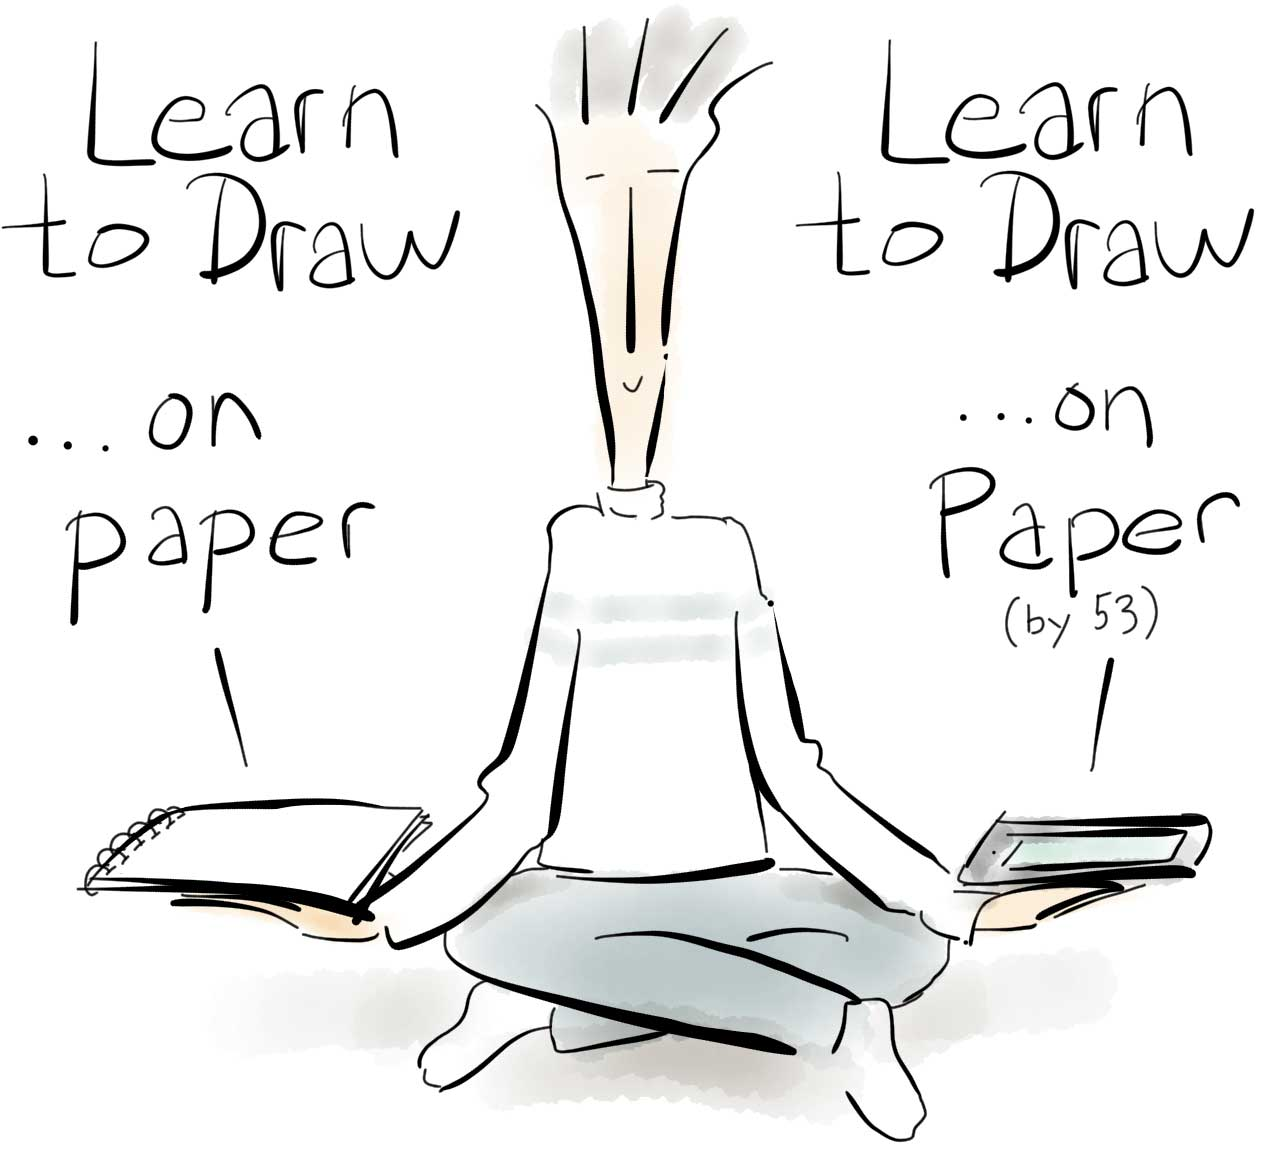 Learn-to-draw-sketchtribe2